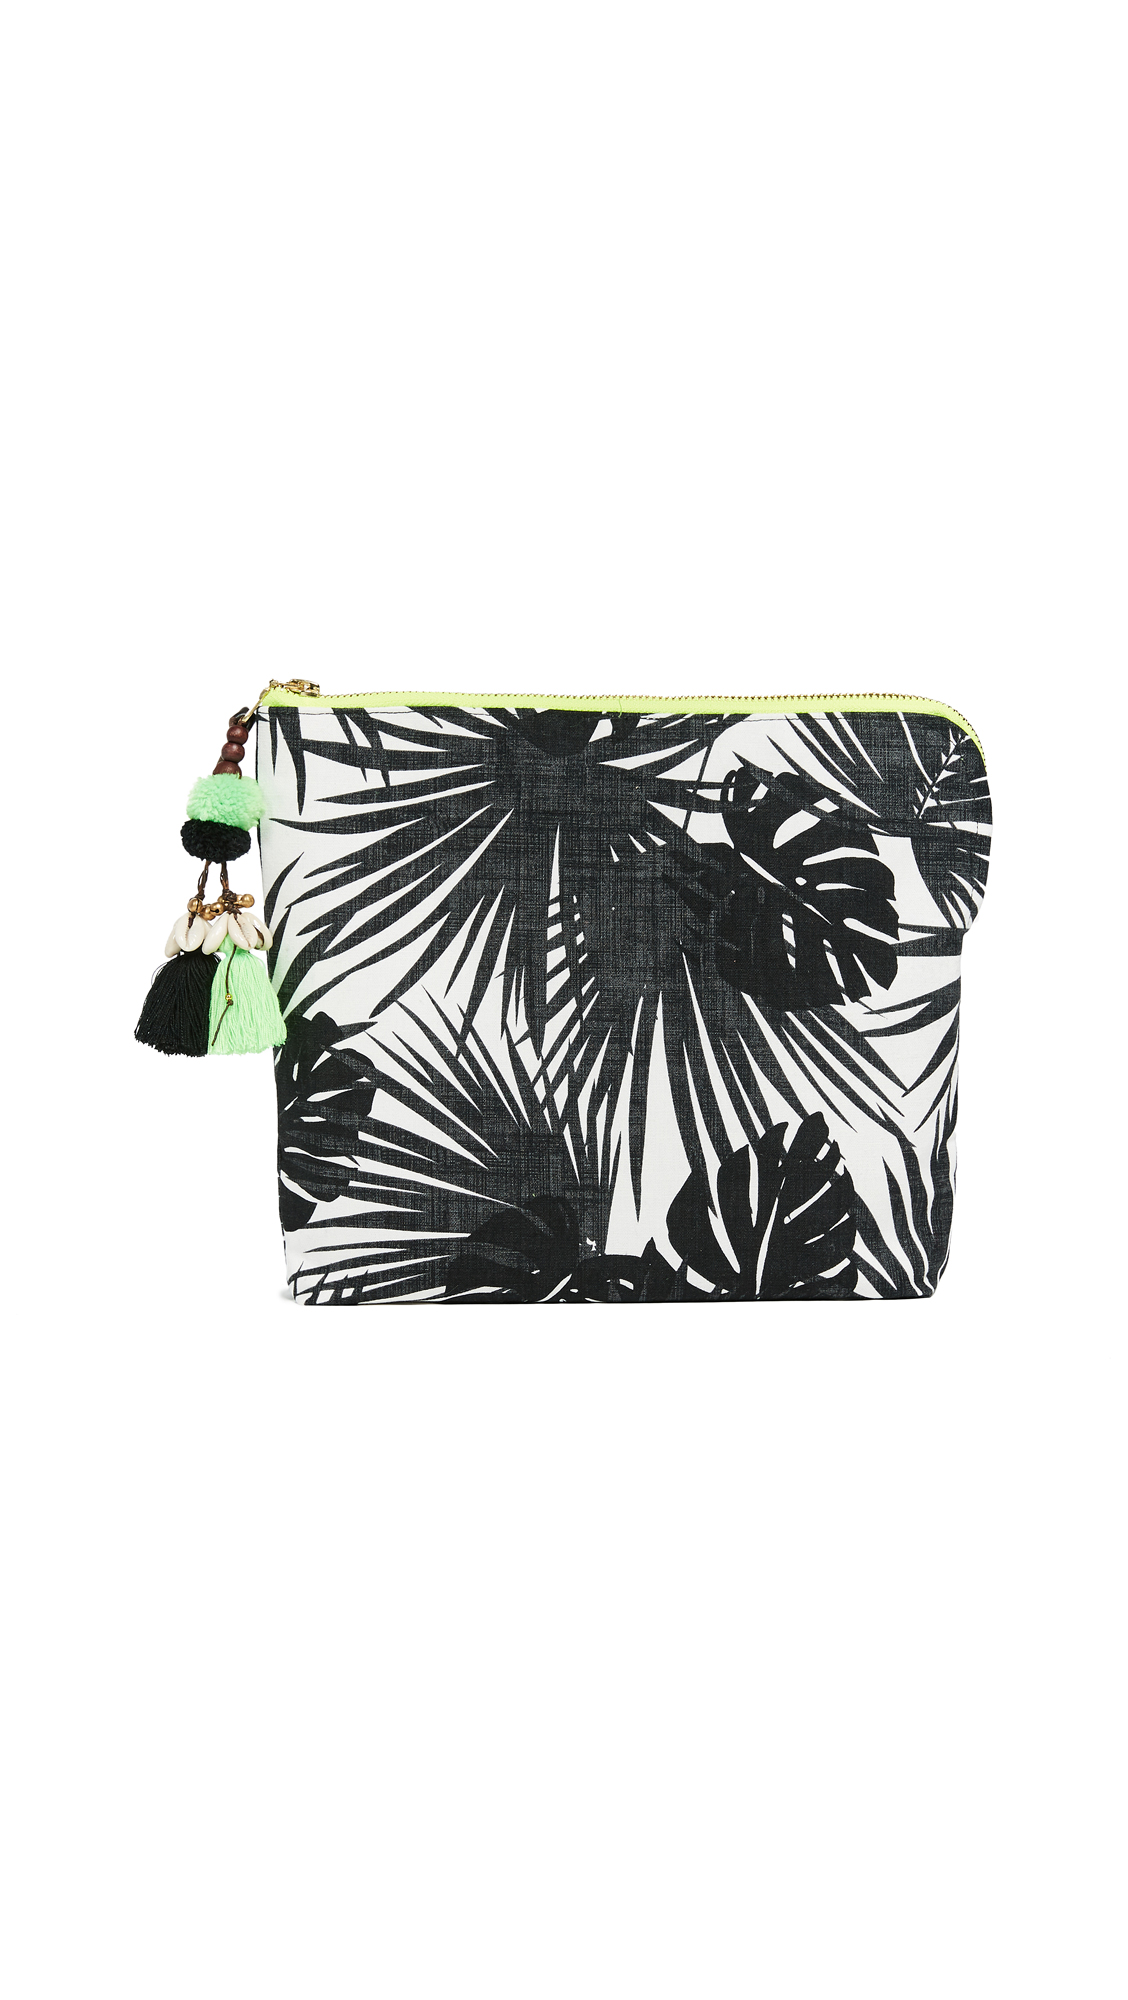 JADETRIBE ALOHA NEON ZIP CLUTCH